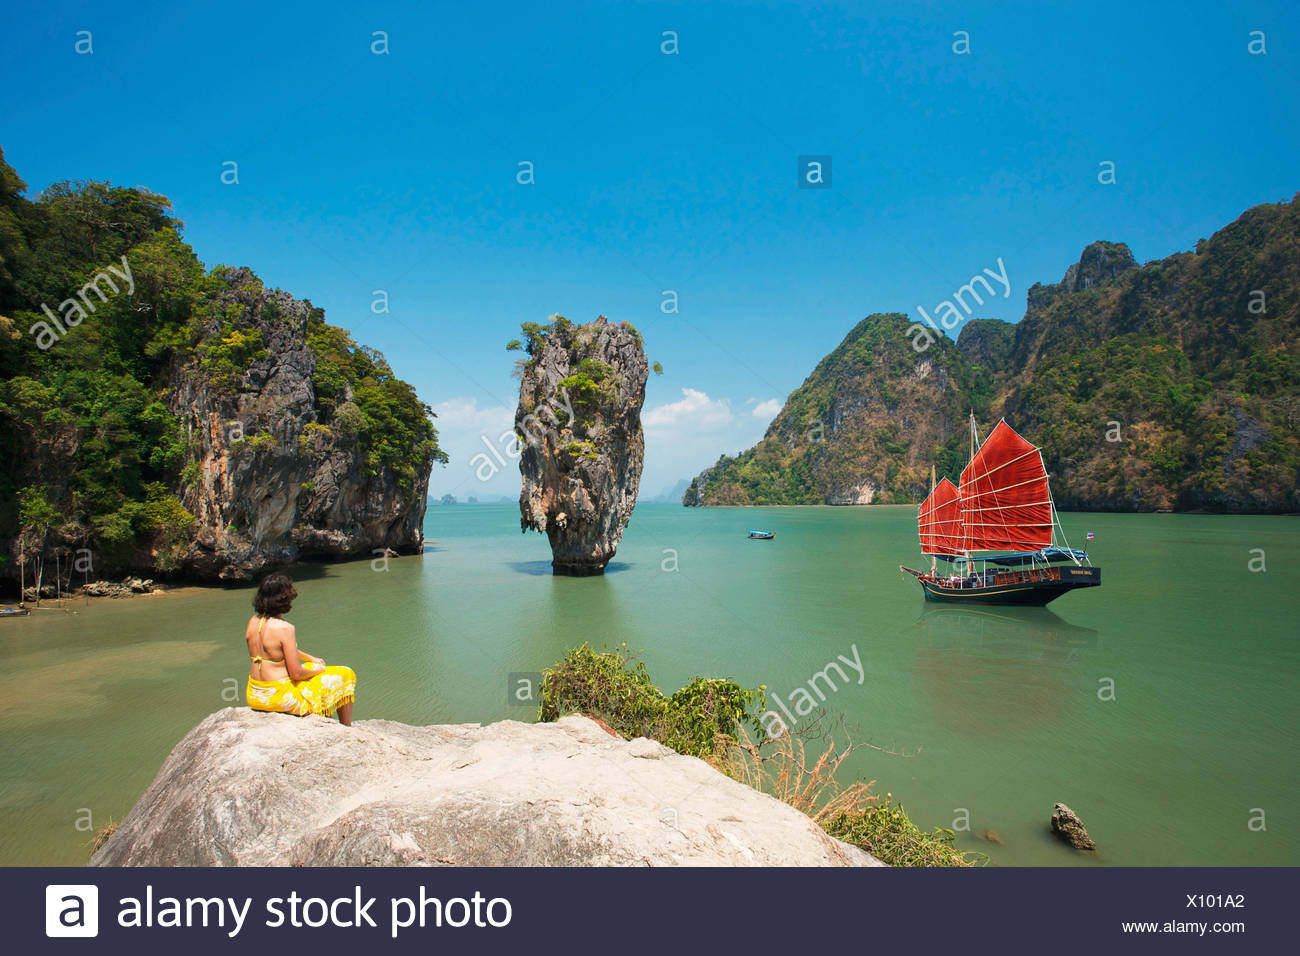 Junk in Phang Nga Bay, James Bond Island, Phuket, Thailand, Asia - Stock Image